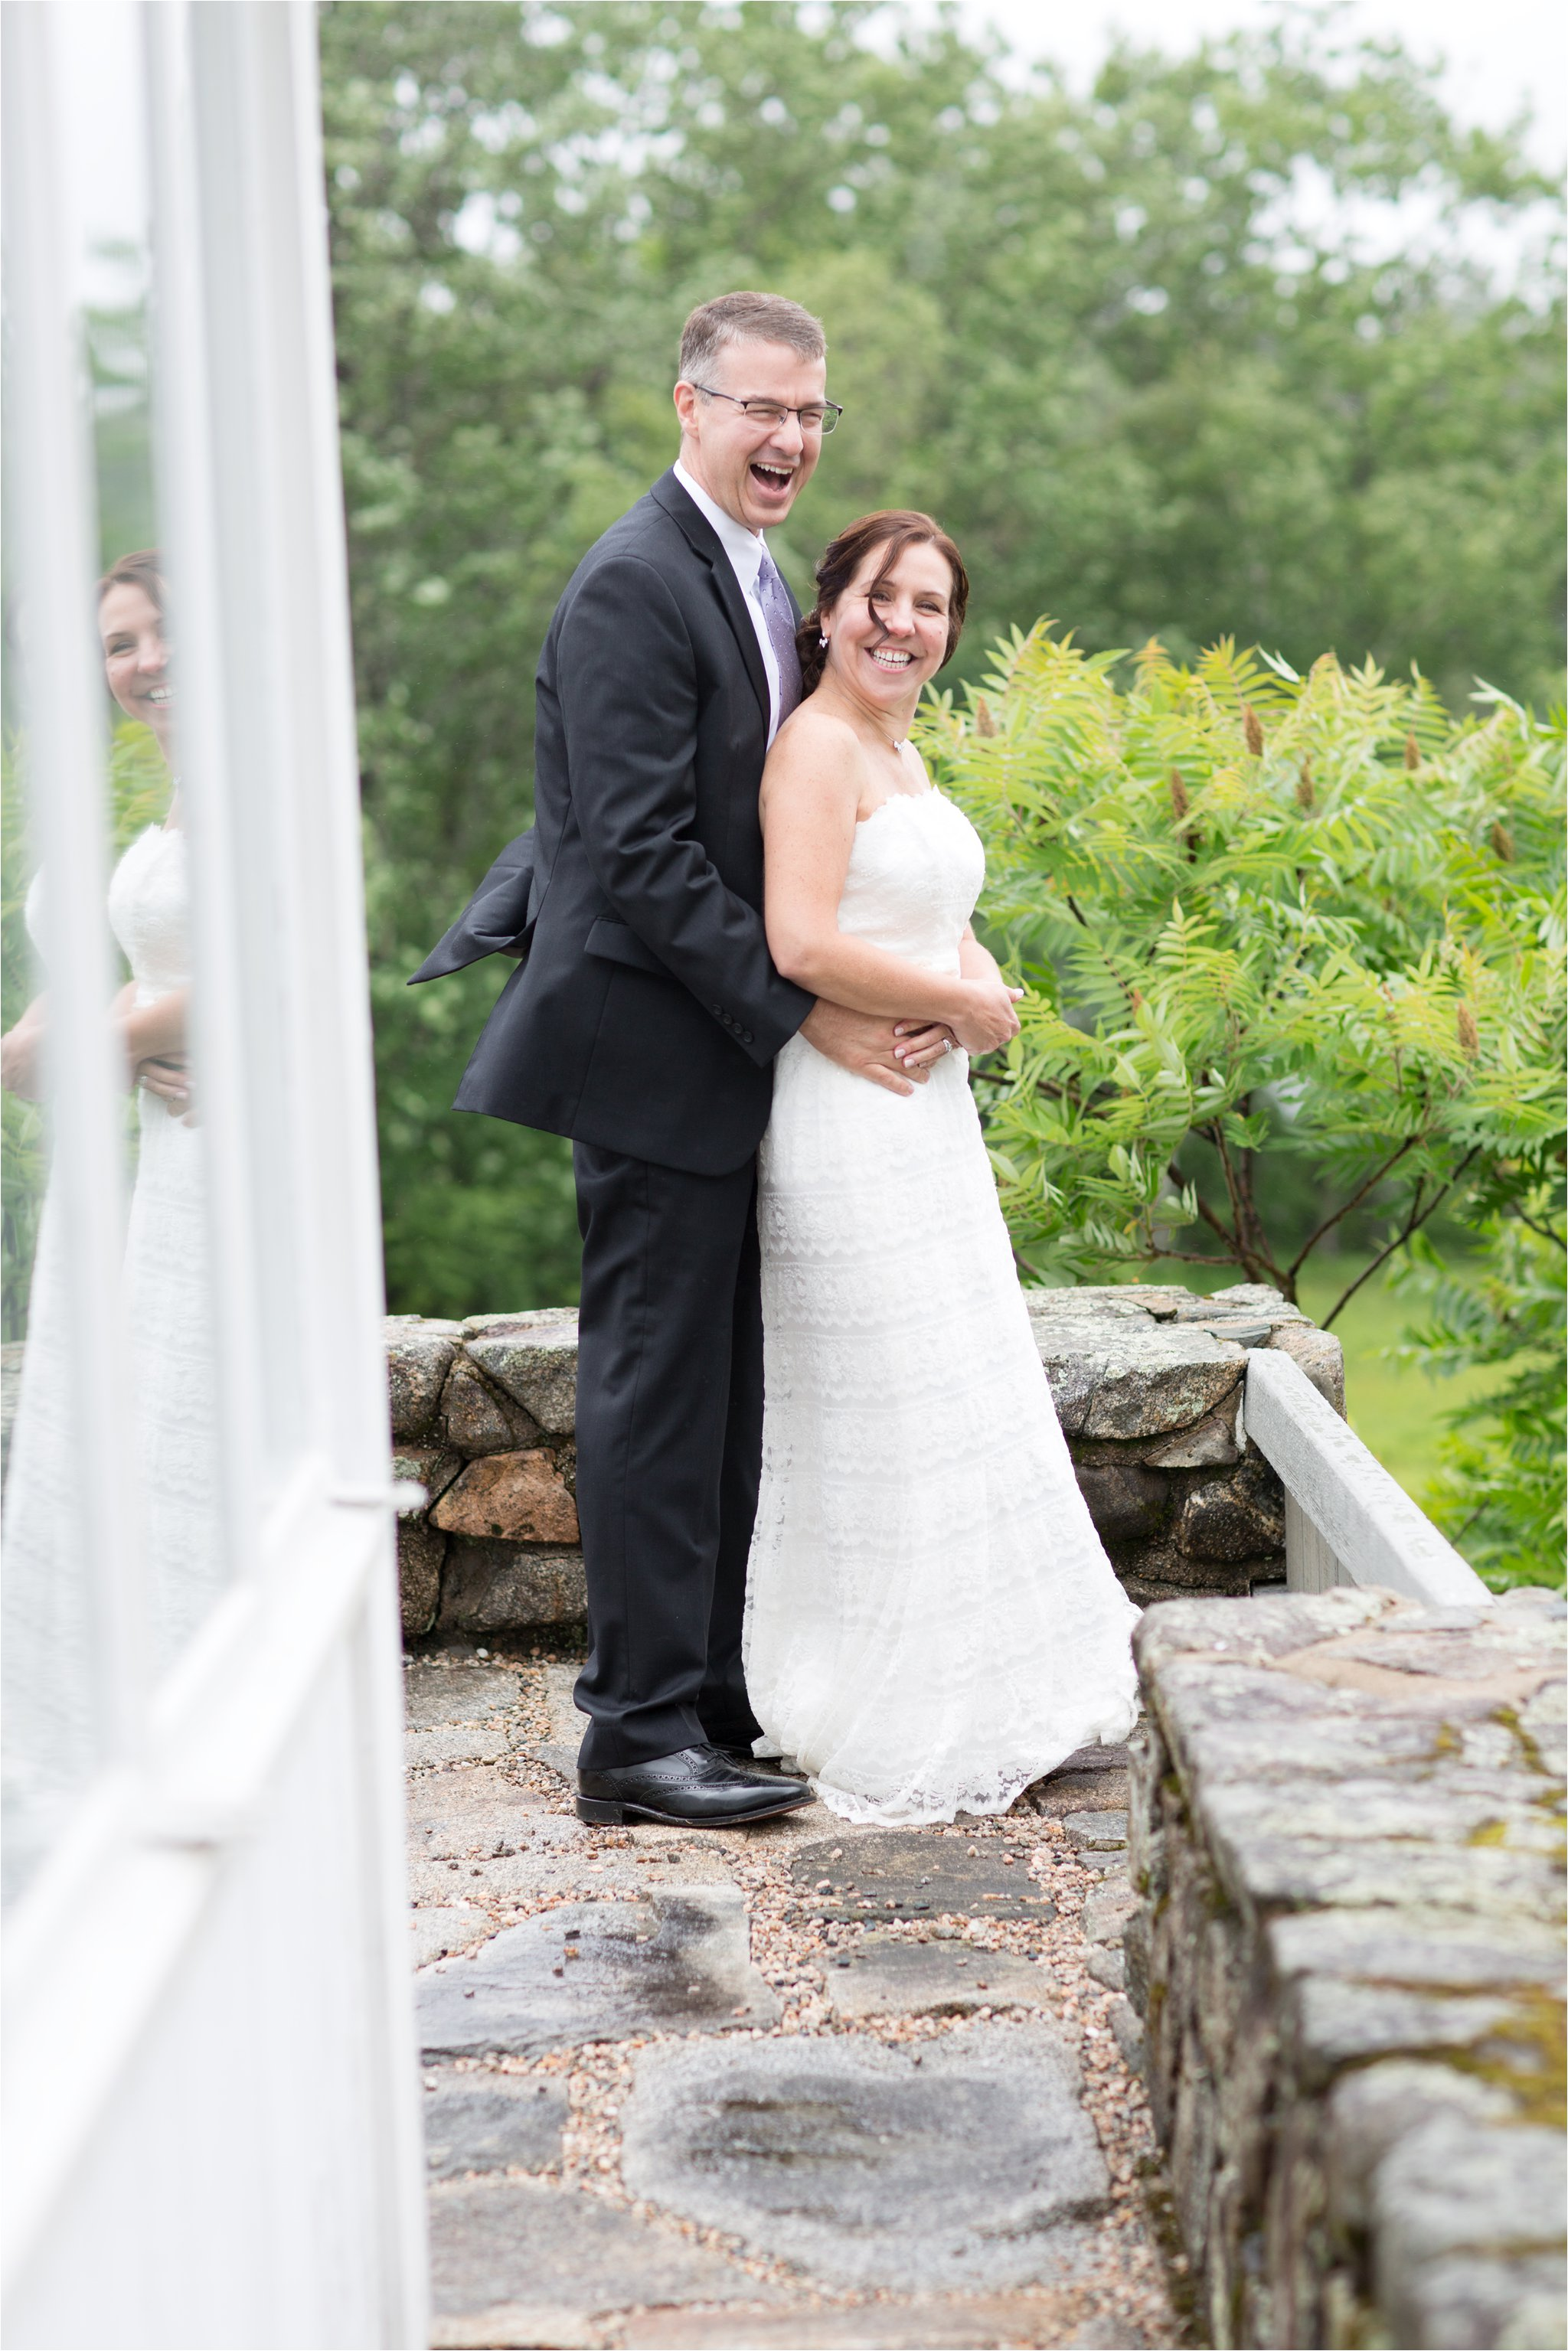 Bride & Groom in the Rain (C) Maundy Mitchell